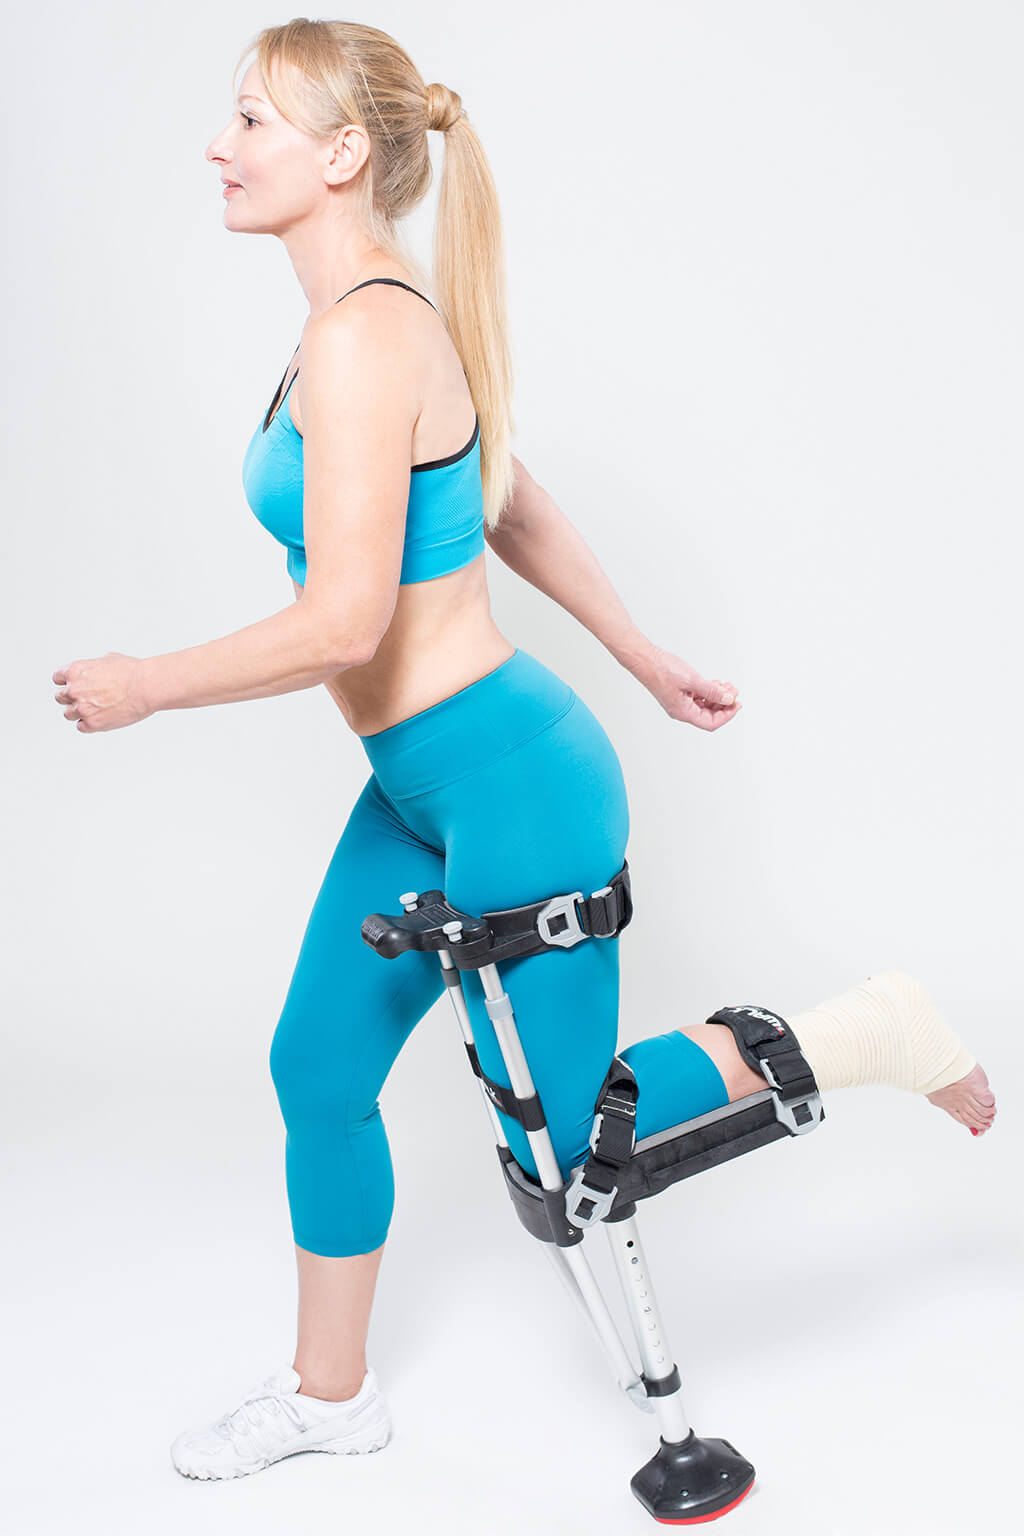 Exercise is fine with this hands-free crutch